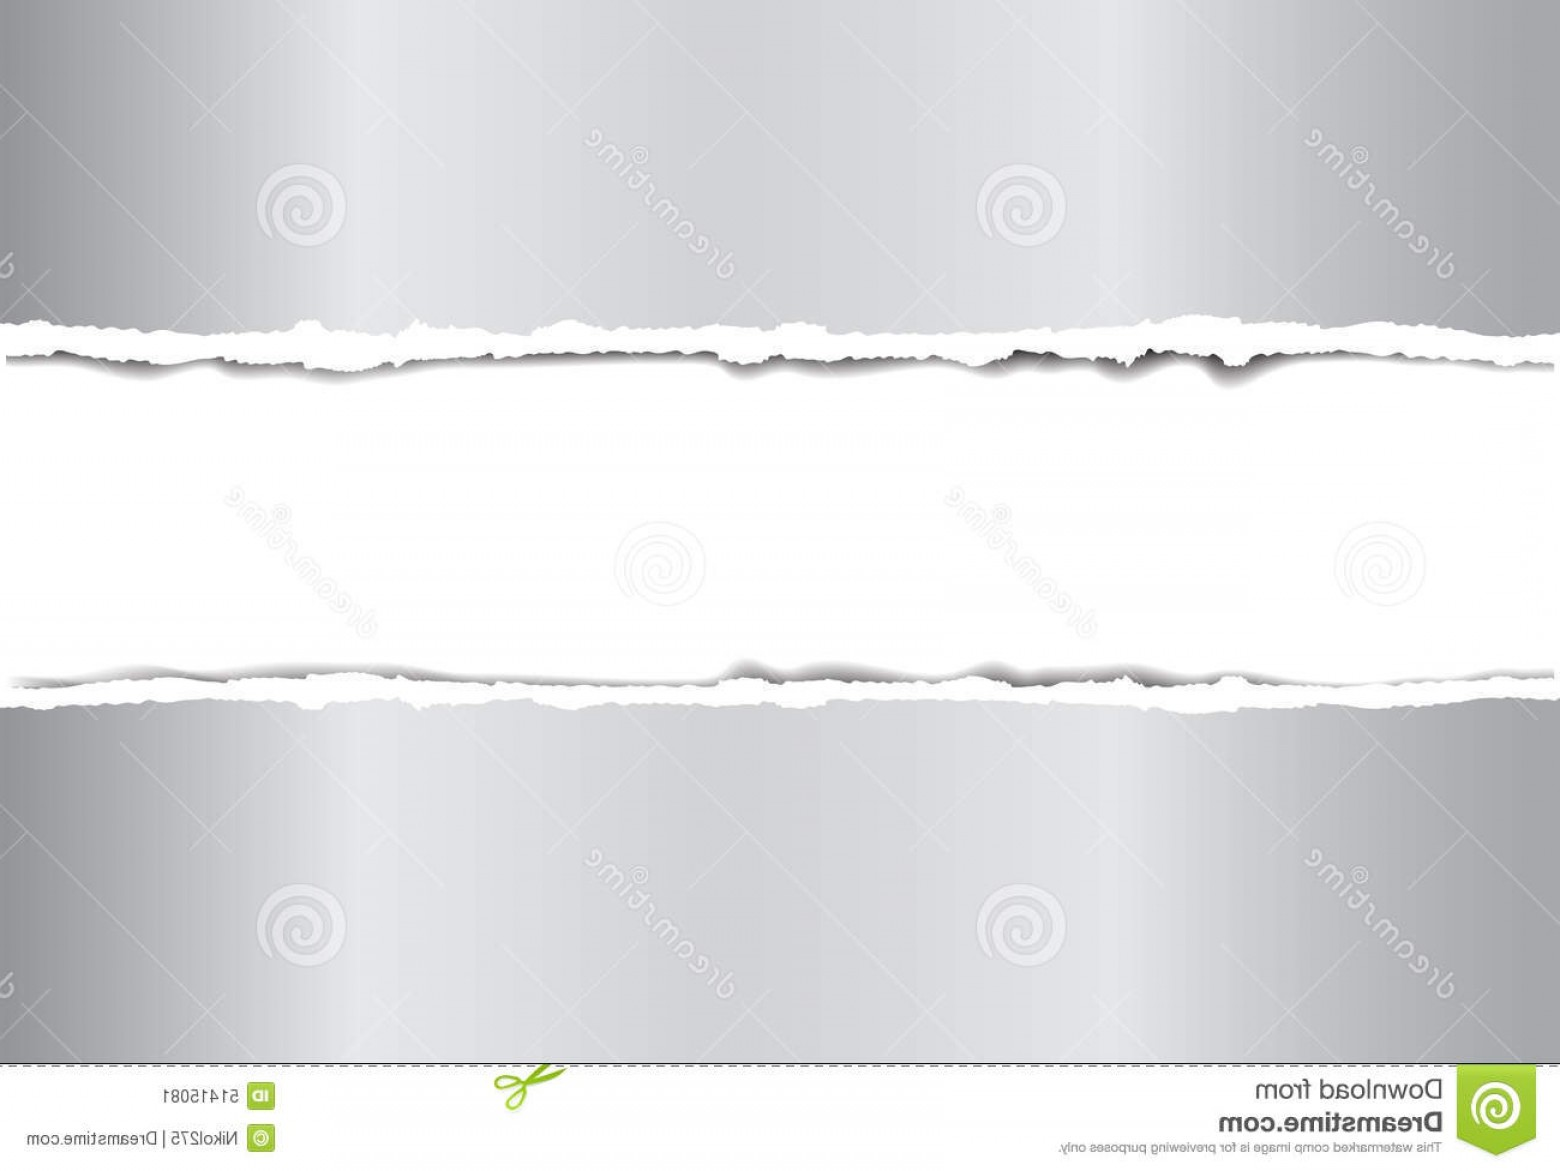 Sheet Metal Effect Vector: Stock Illustration Torn Paper Broken Metallic Effect Vector Image Image